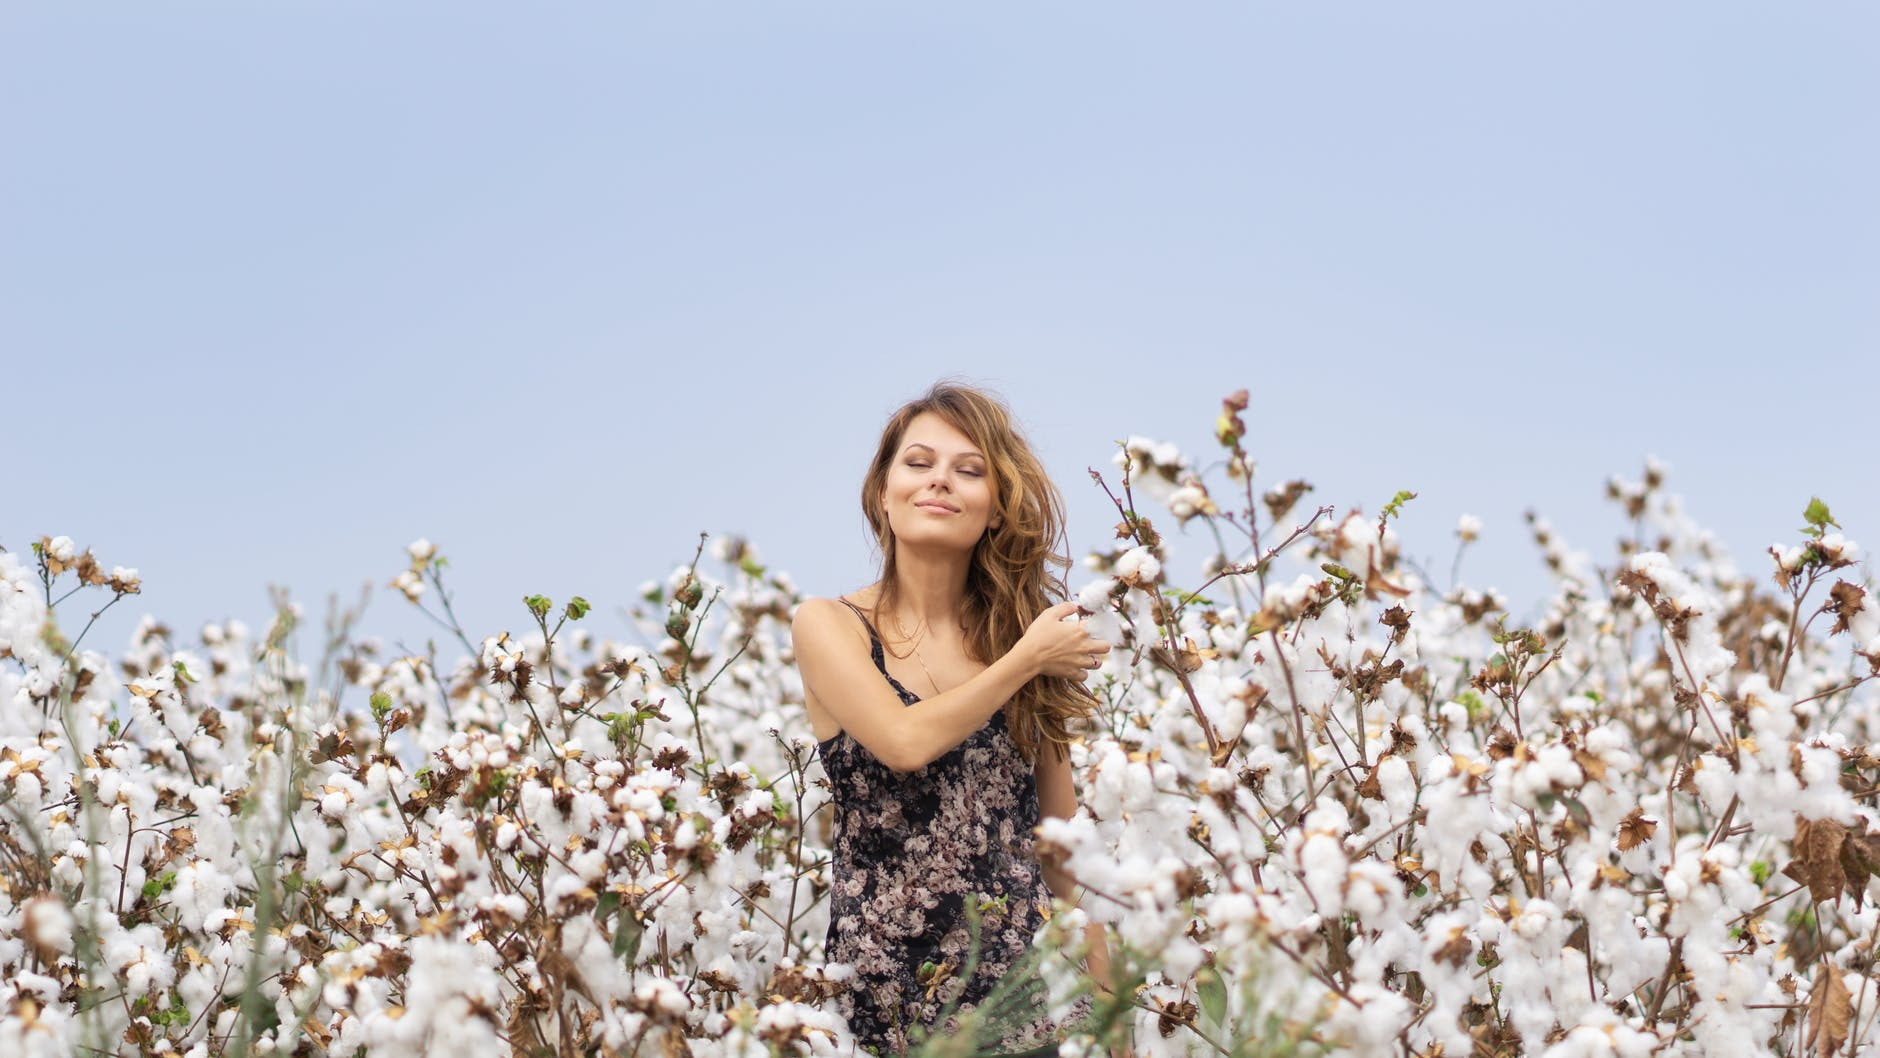 photo of a woman surrounded by white flowers